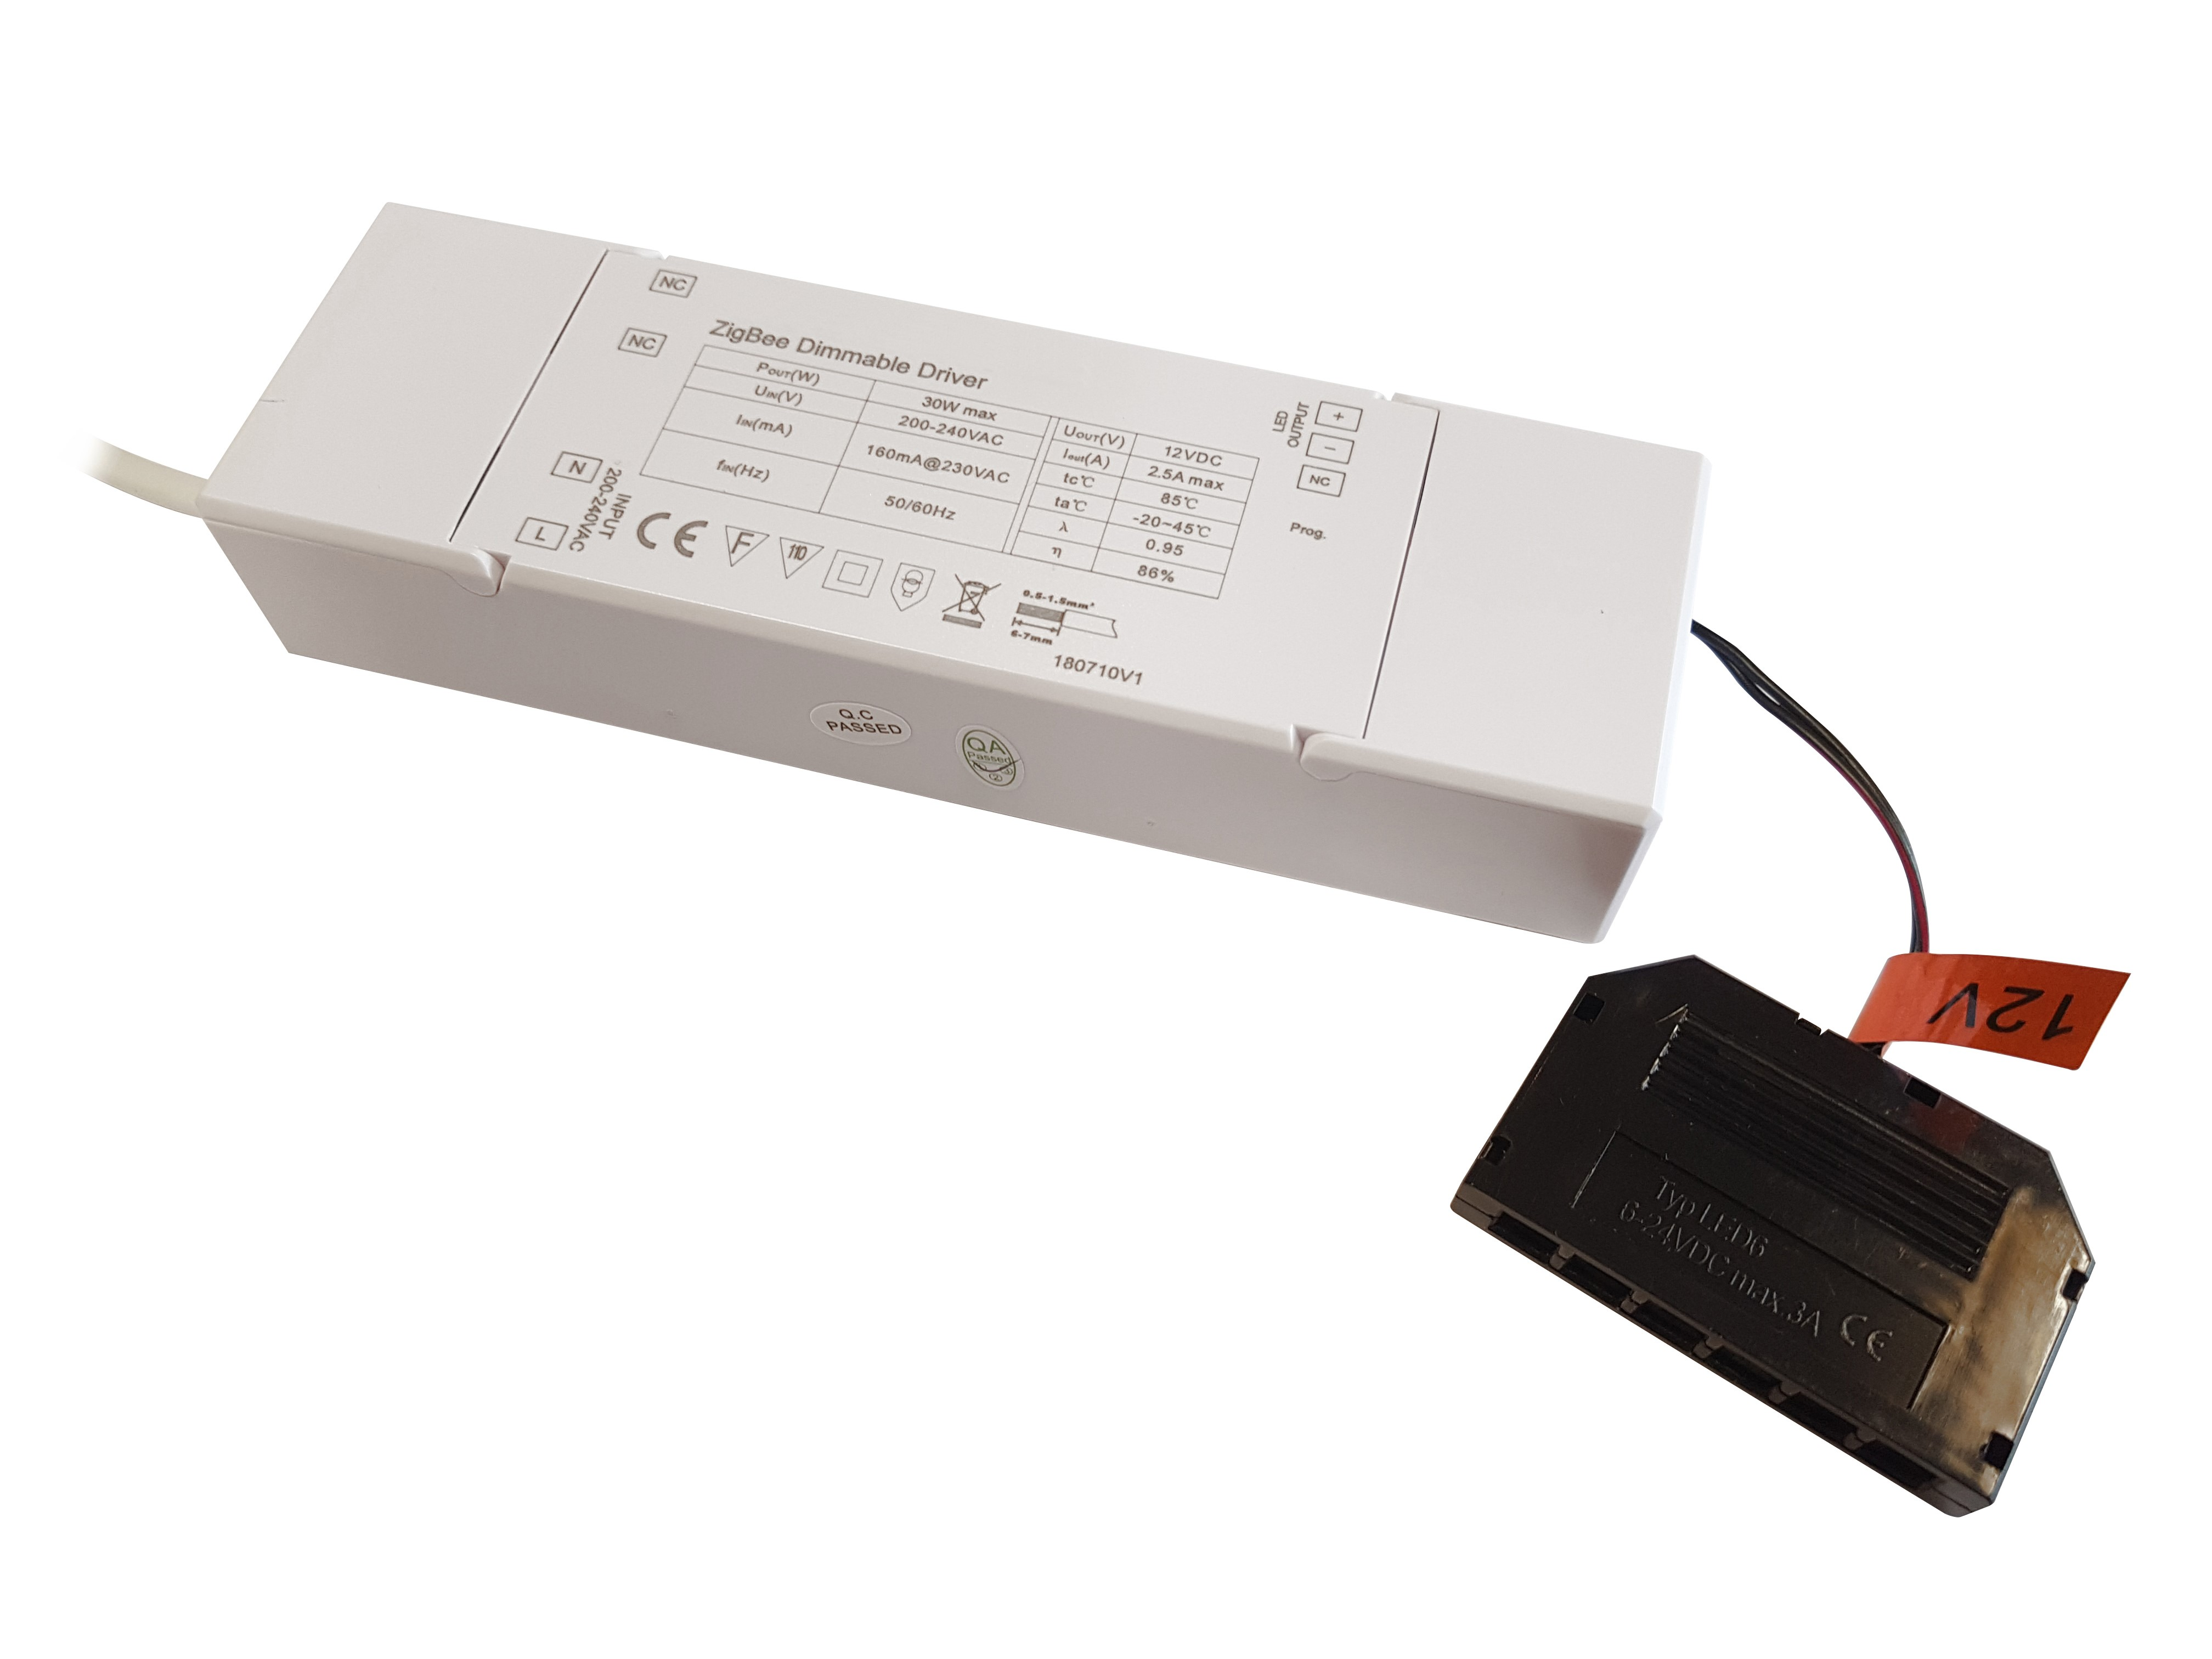 12V LED SMART DRIVER 30W WITH 6-PORT MICRO PLUG CONNECTOR